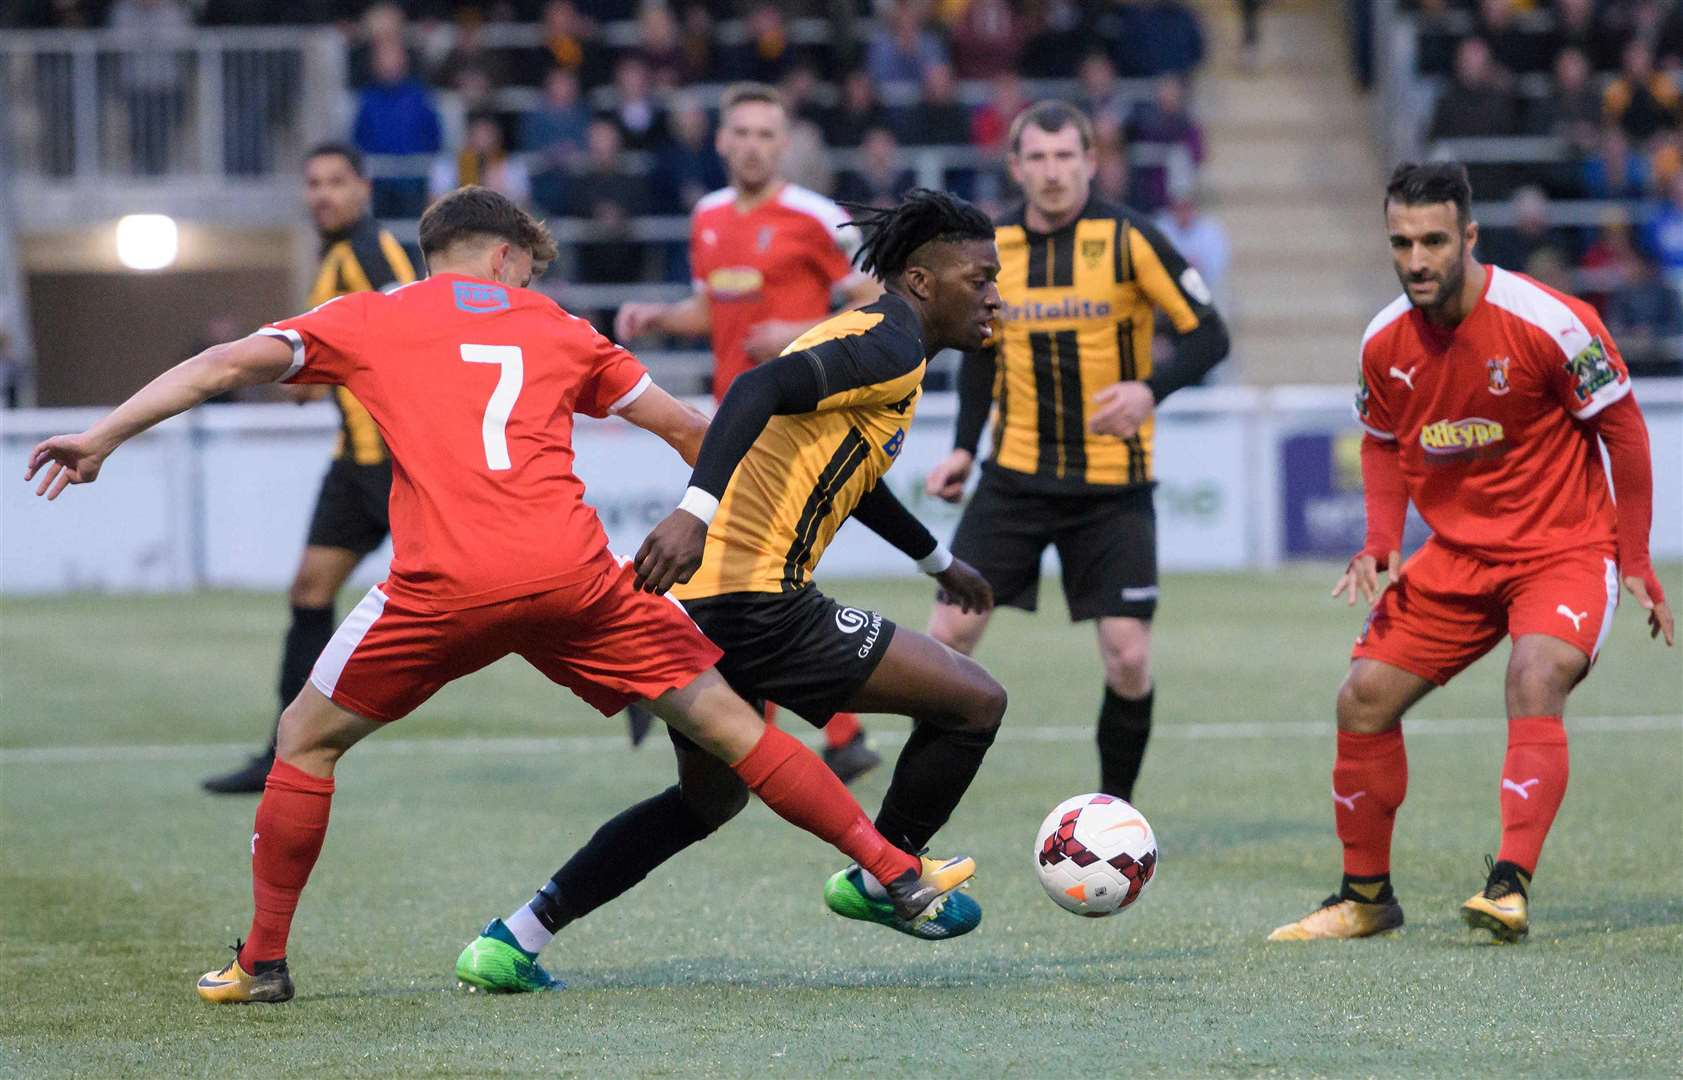 Andre Coker in action for Maidstone Picture: Andy Payton